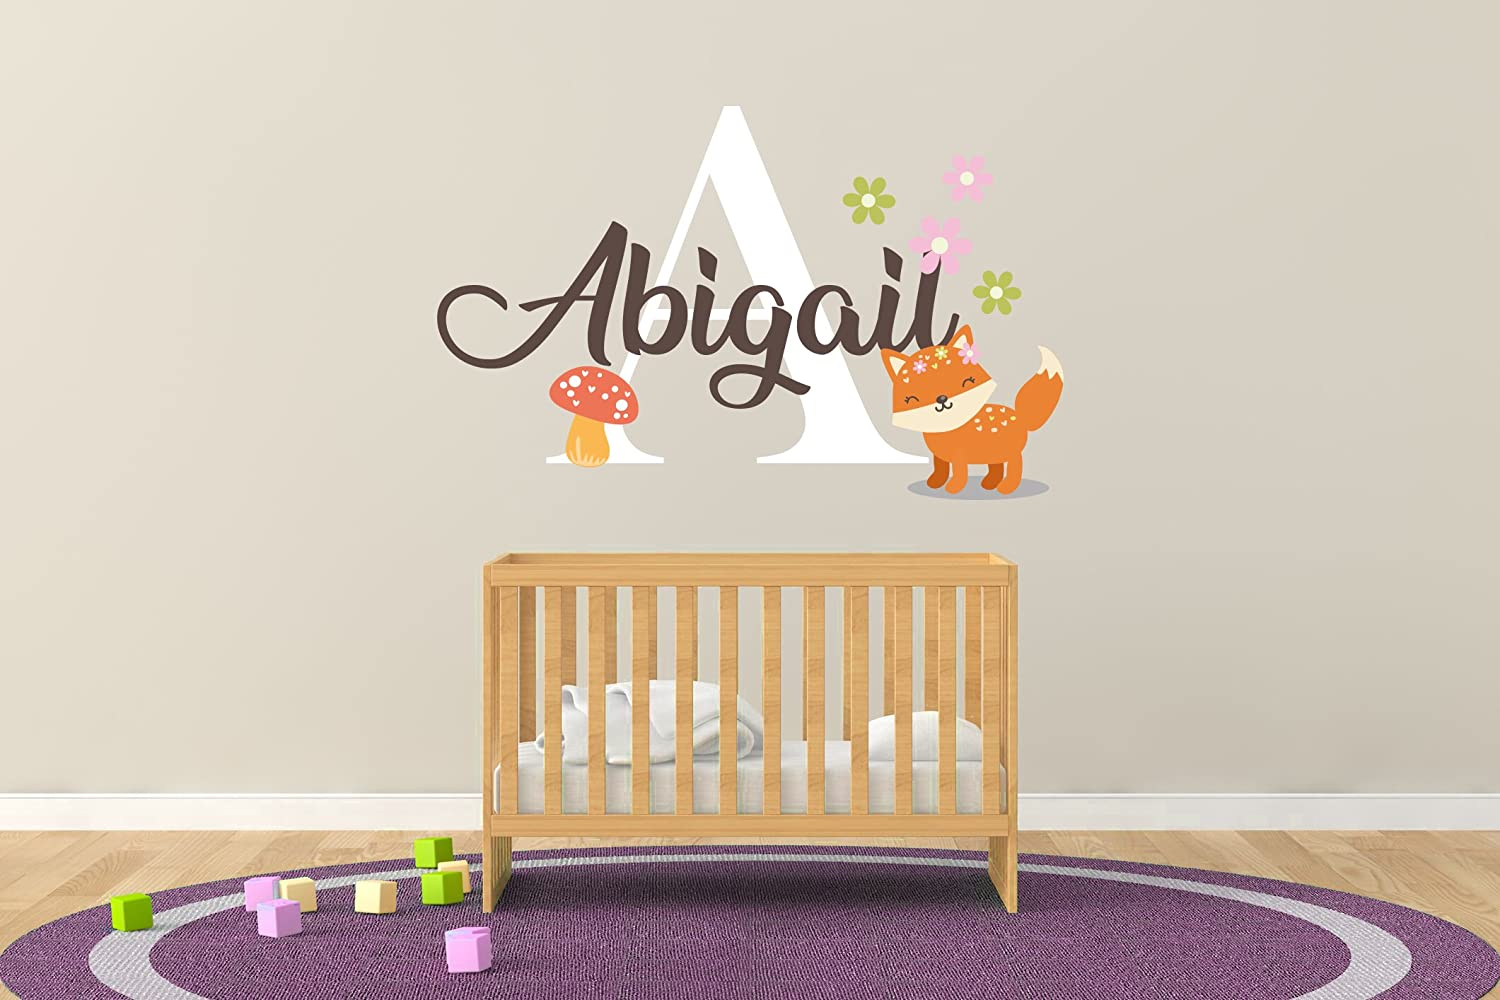 R132 Mural Wall Decal Sticker for Home Childrens Bedroom Nursery Wall Decal for Baby ROM Decorations Baby Girl Custom Name /& Initial Fox Flowers and Fungus Wide 22 x 7 Height